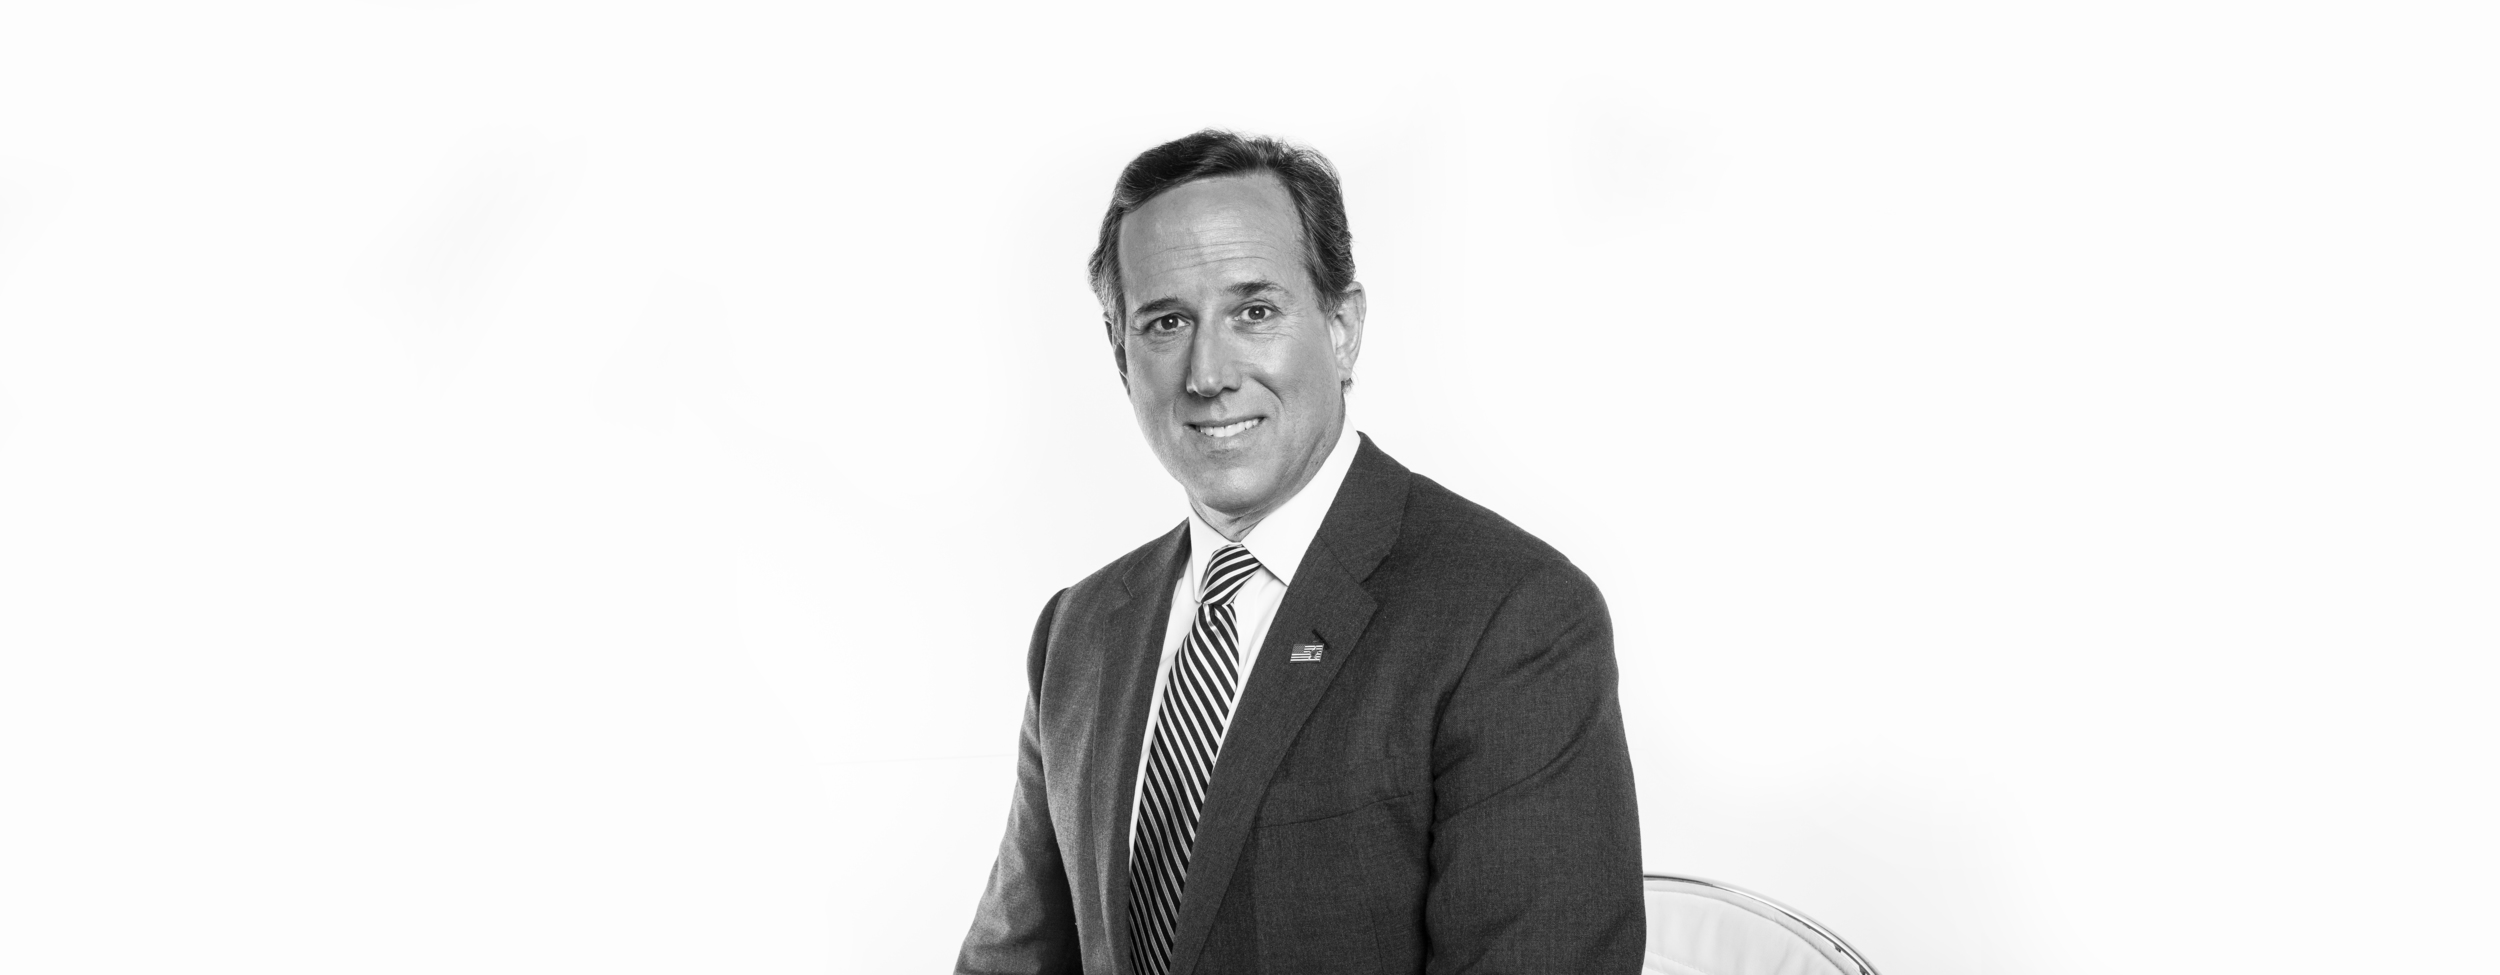 Rick Santorum, Senator of Pennsylvania